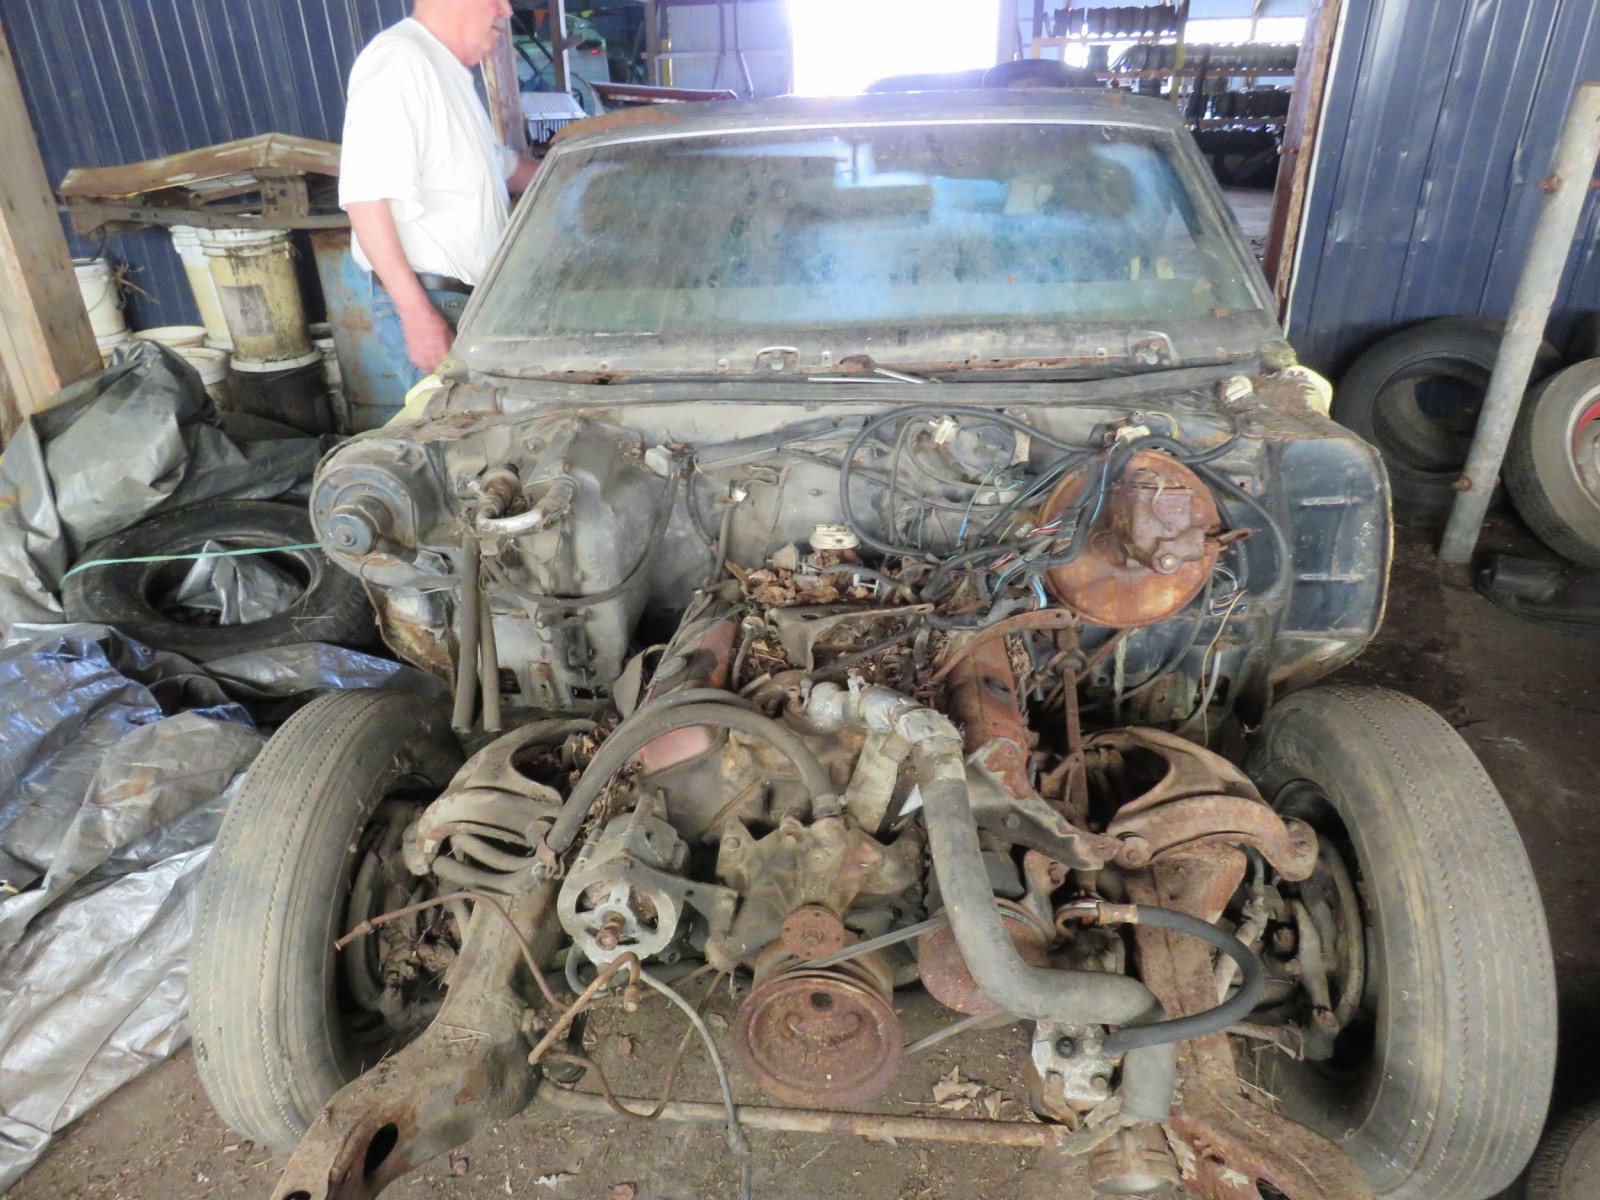 1972 Chevrolet Chevelle Convertible for Project or Parts - Image 7